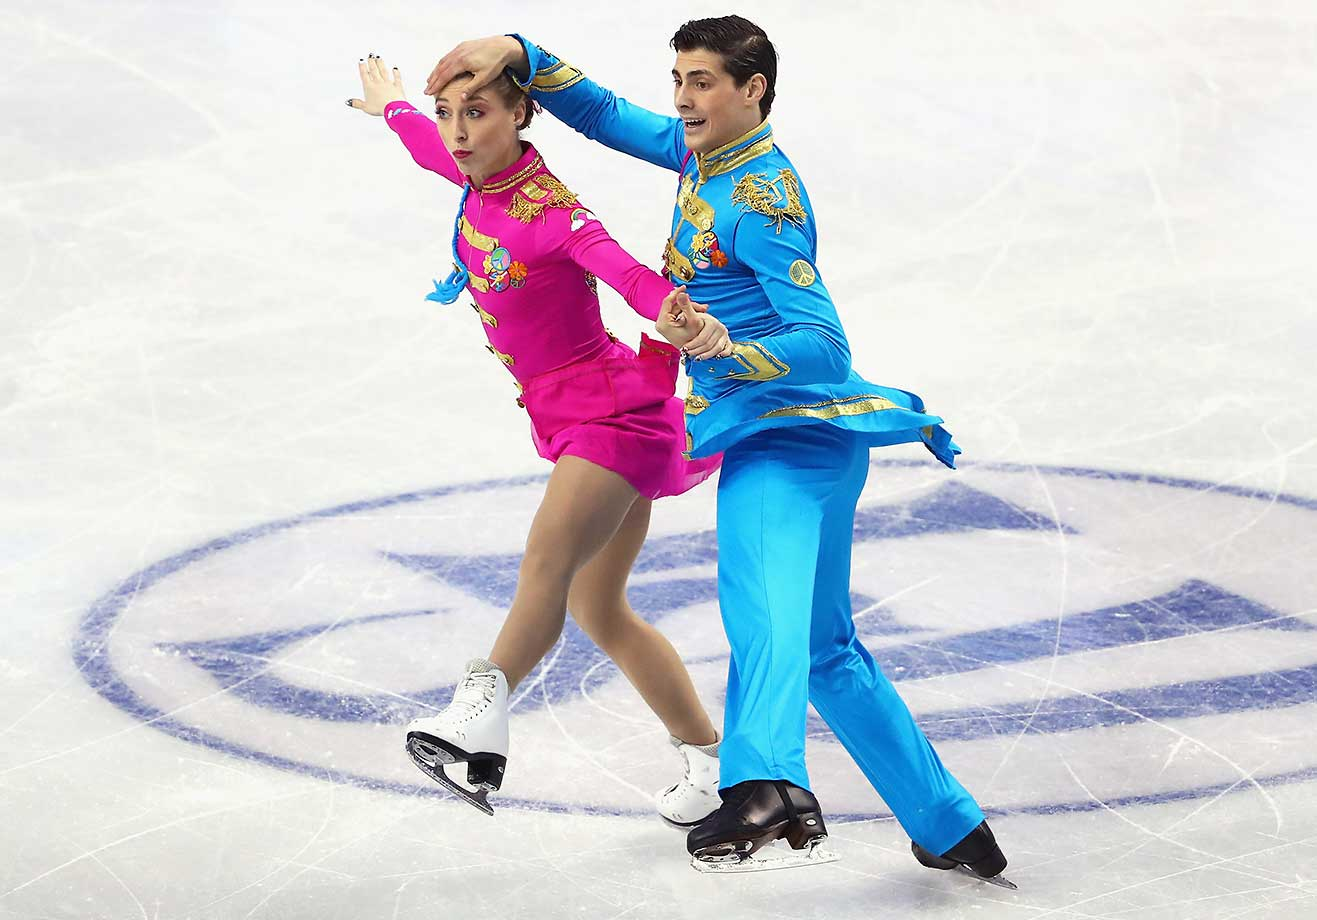 Piper Gilles and Paul Poirier of Canada skate in the short program during day 3 of the ISU World Figure Skating Championships in Boston.